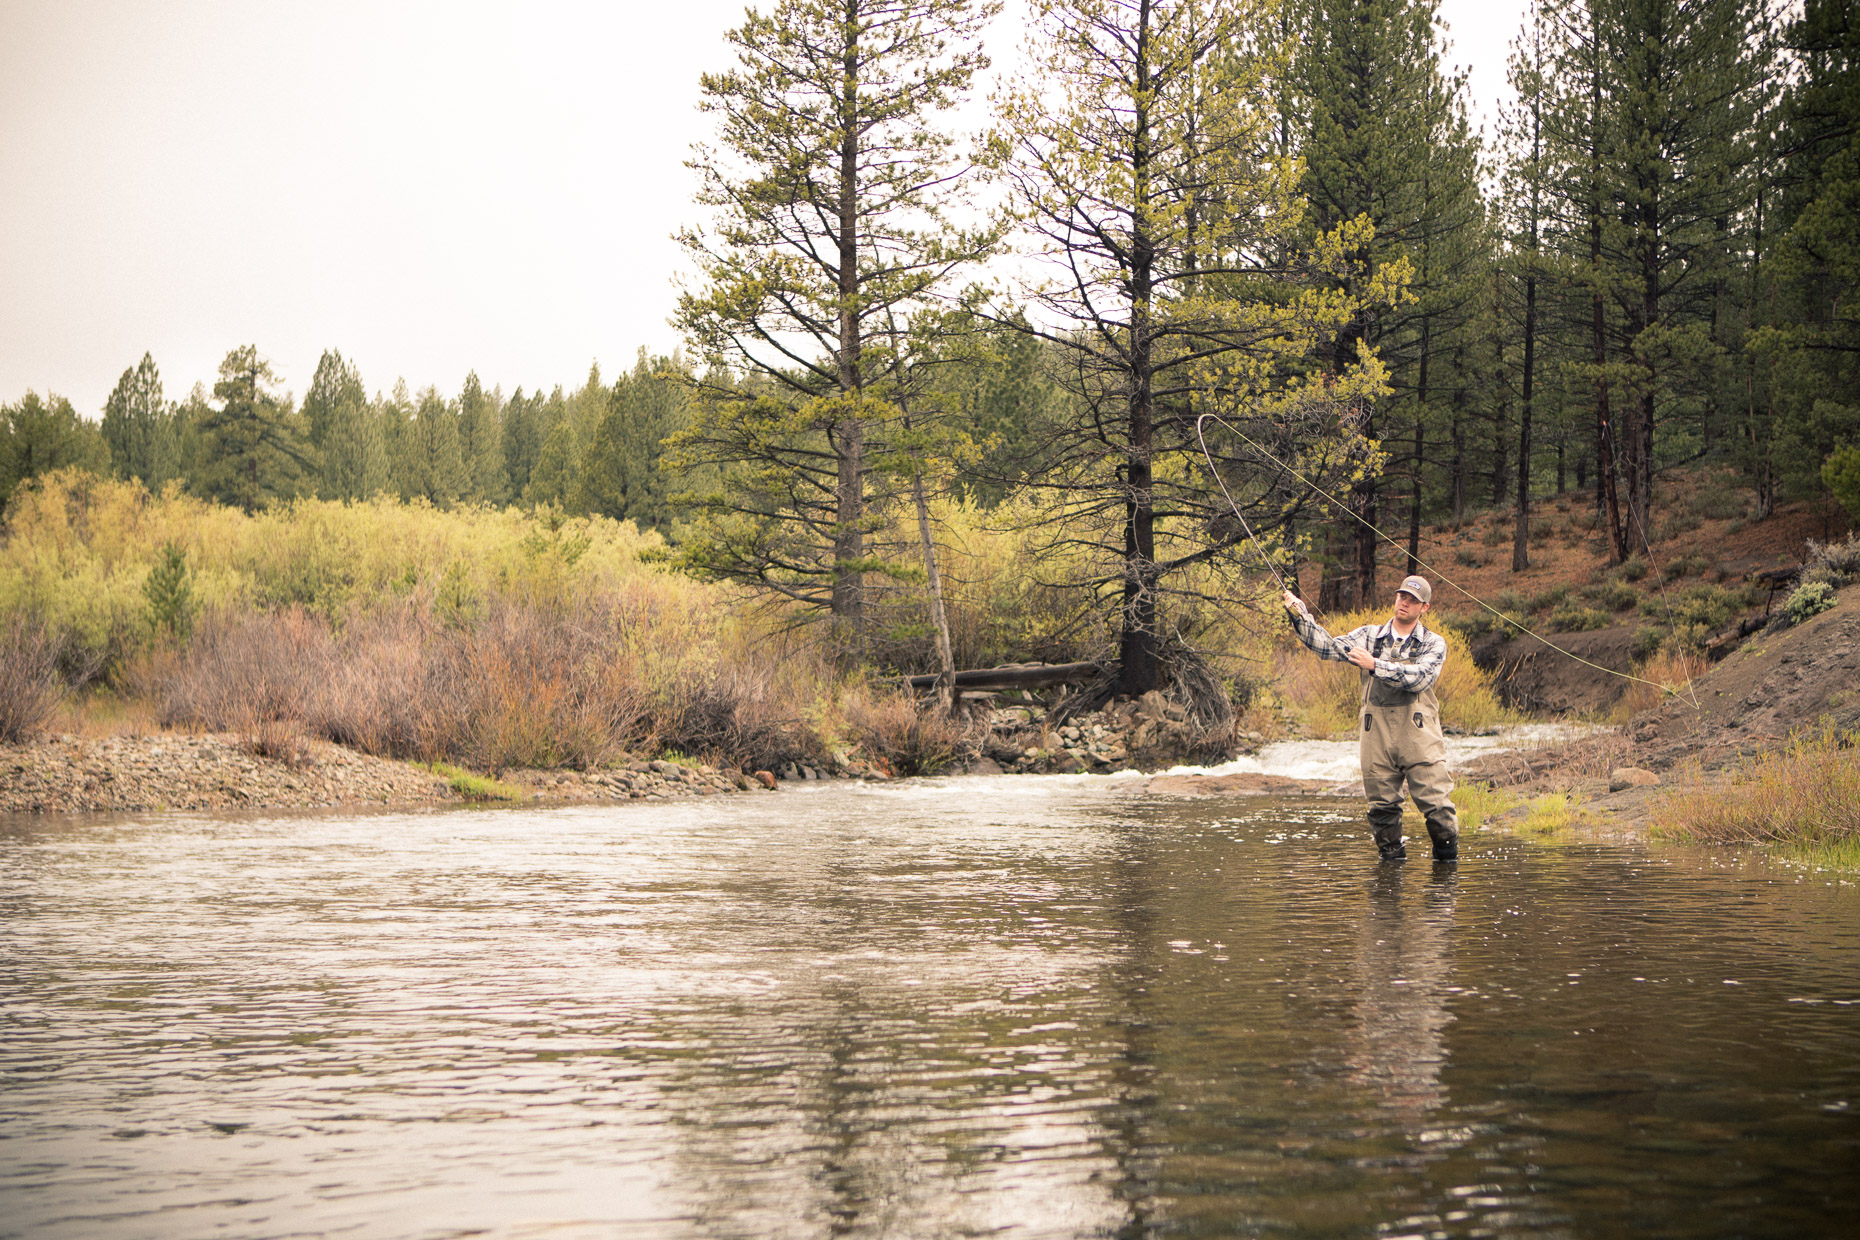 Fly fishing on a stream in the Sierra Nevada